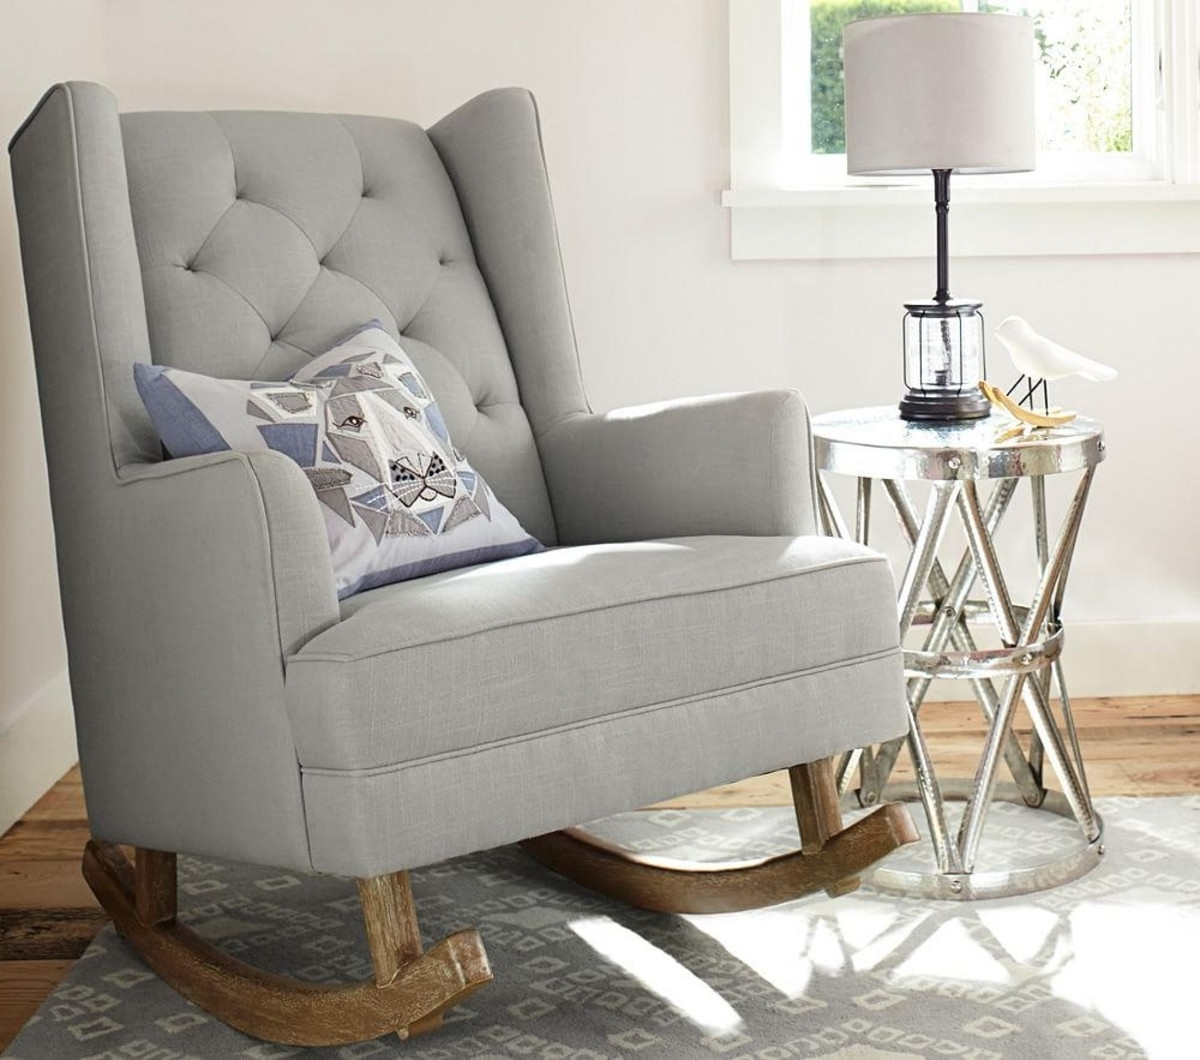 Well Known Uncategorized Nursery Chair Rocking Chairs For Cheap I Buy Ideas On Intended For Rocking Chairs For Nursing (View 13 of 20)